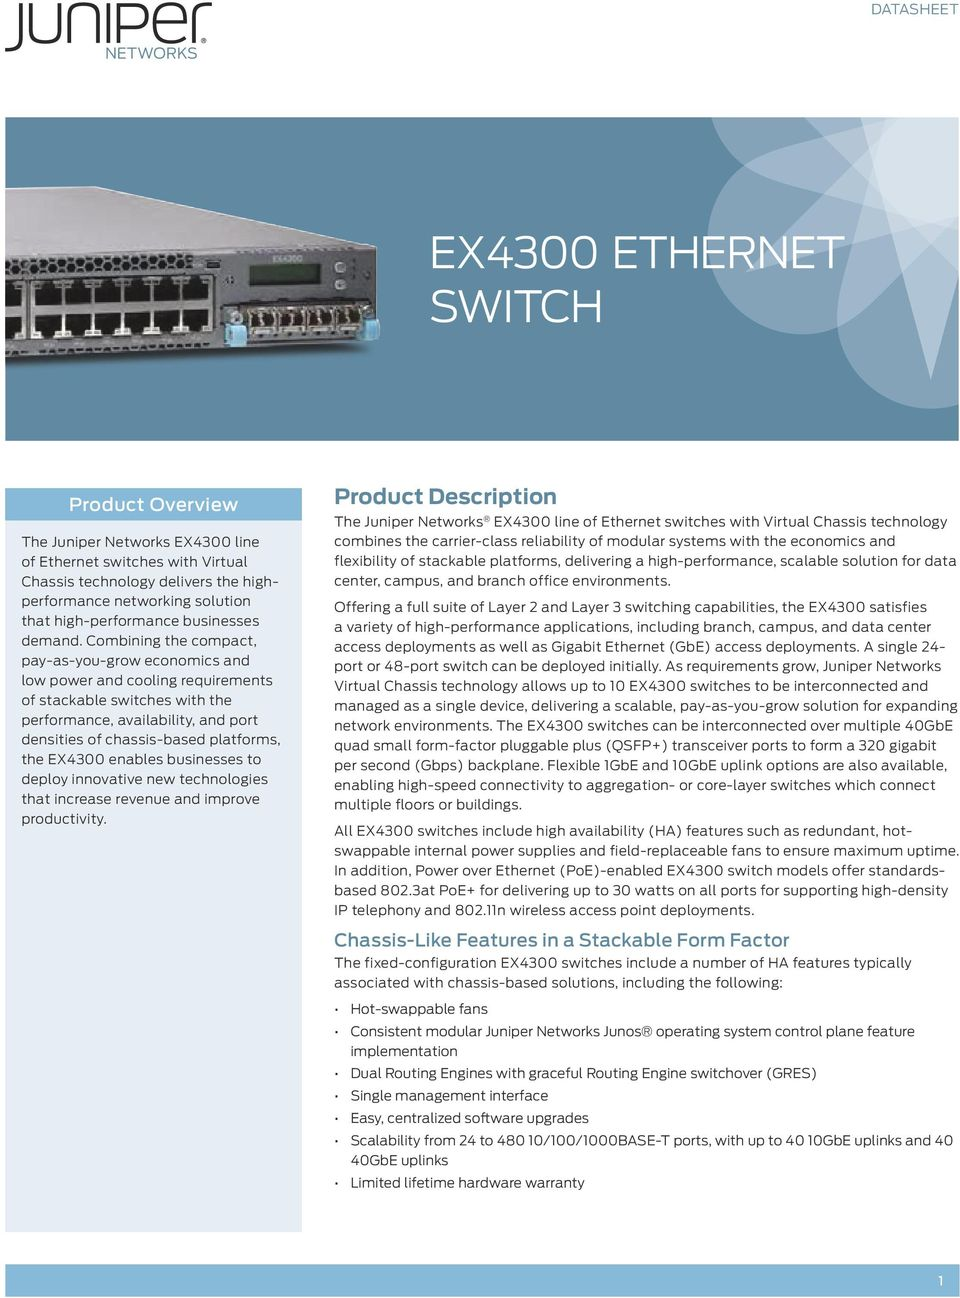 Combining the compact, pay-as-you-grow economics and low power and cooling requirements of stackable switches with the performance, availability, and port densities of chassis-based platforms, the